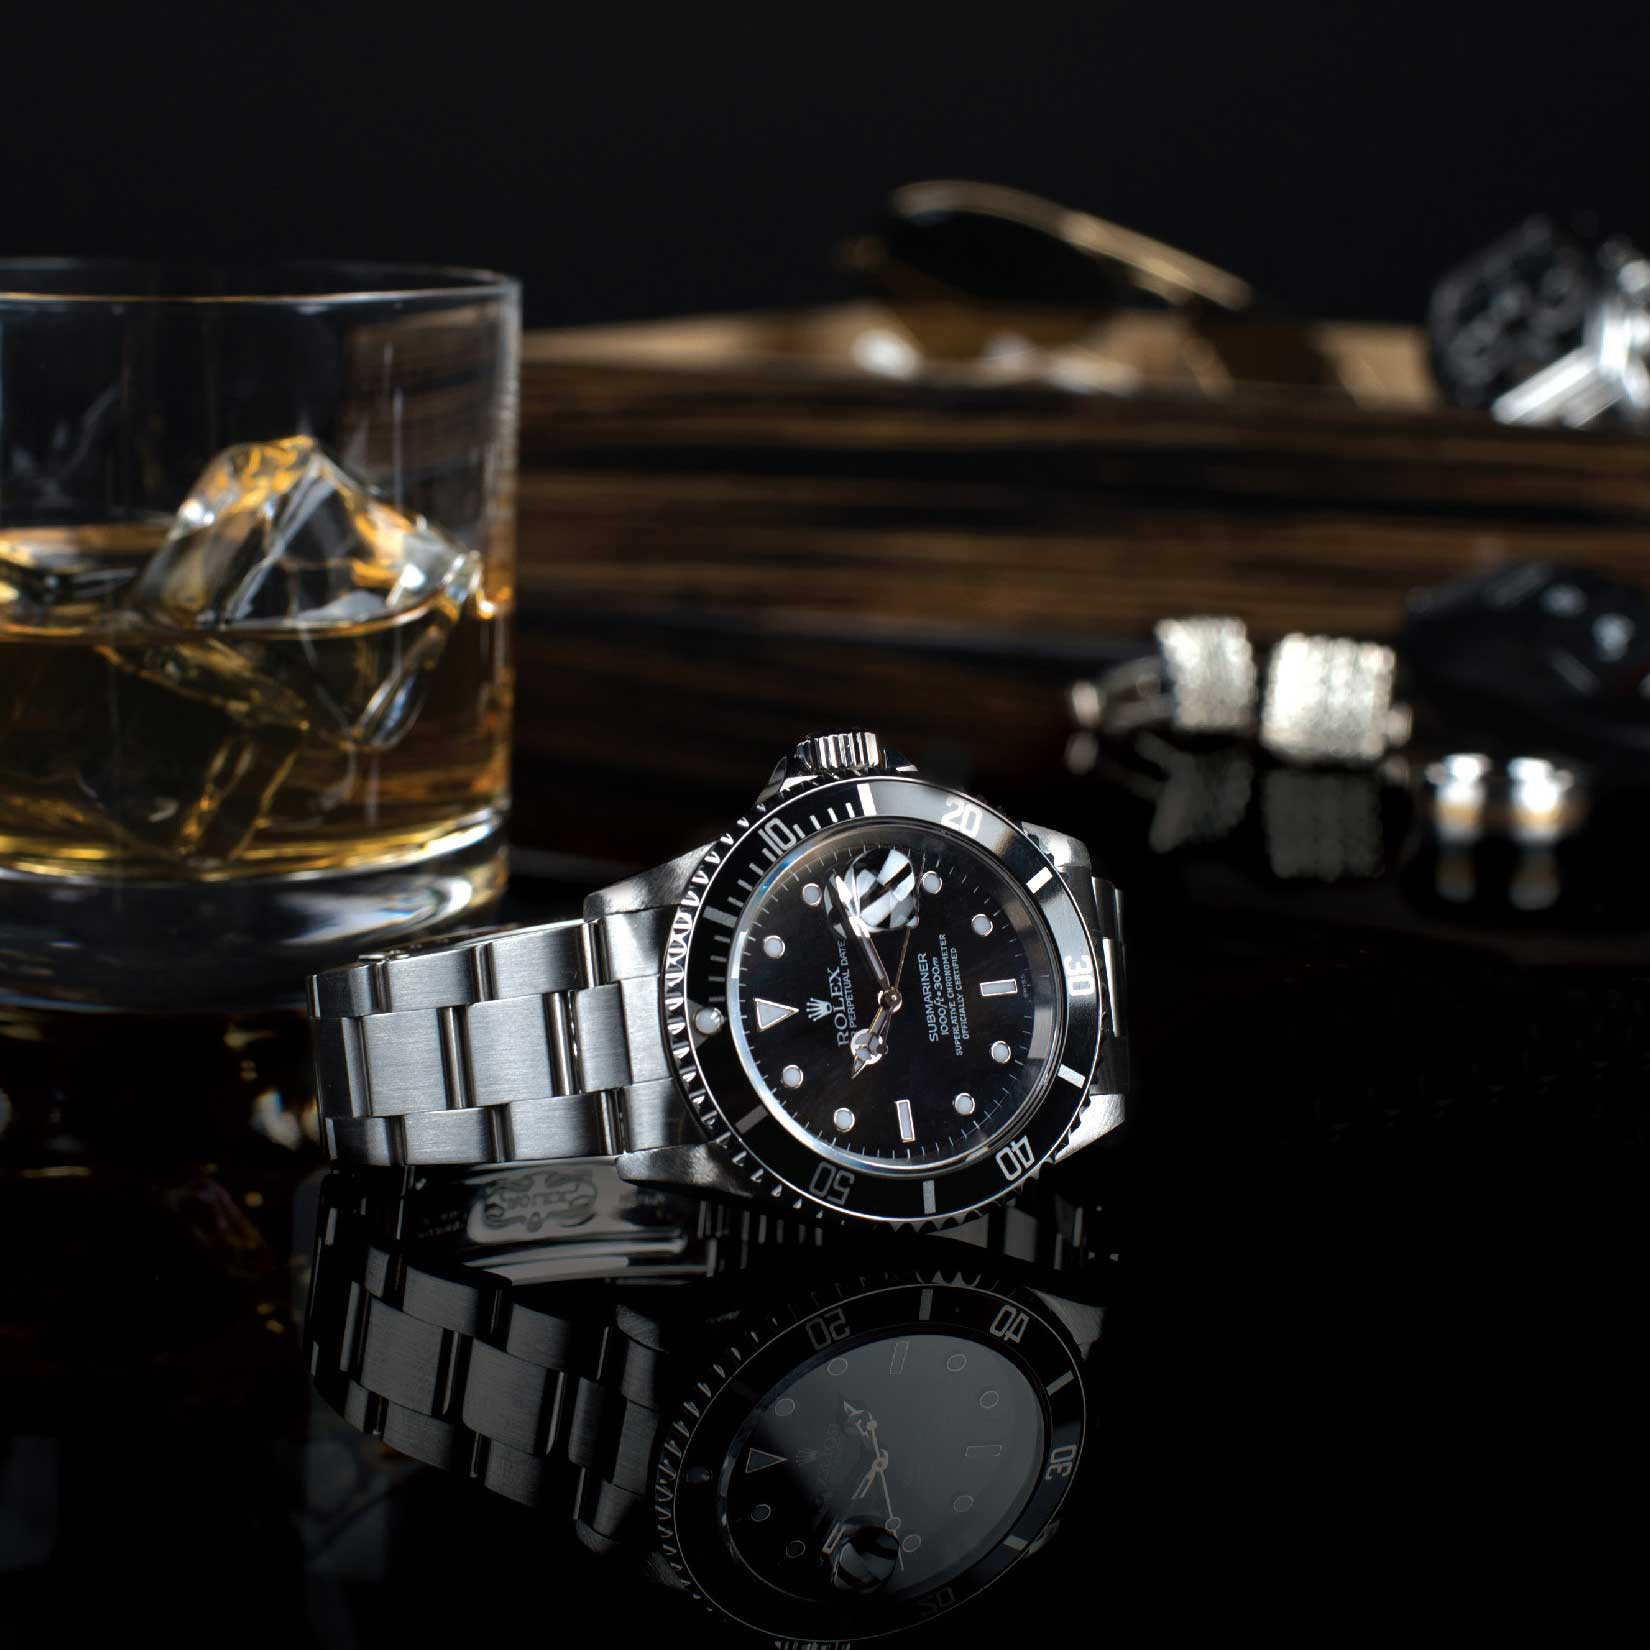 success guam watches on wine whiskey a stripes news